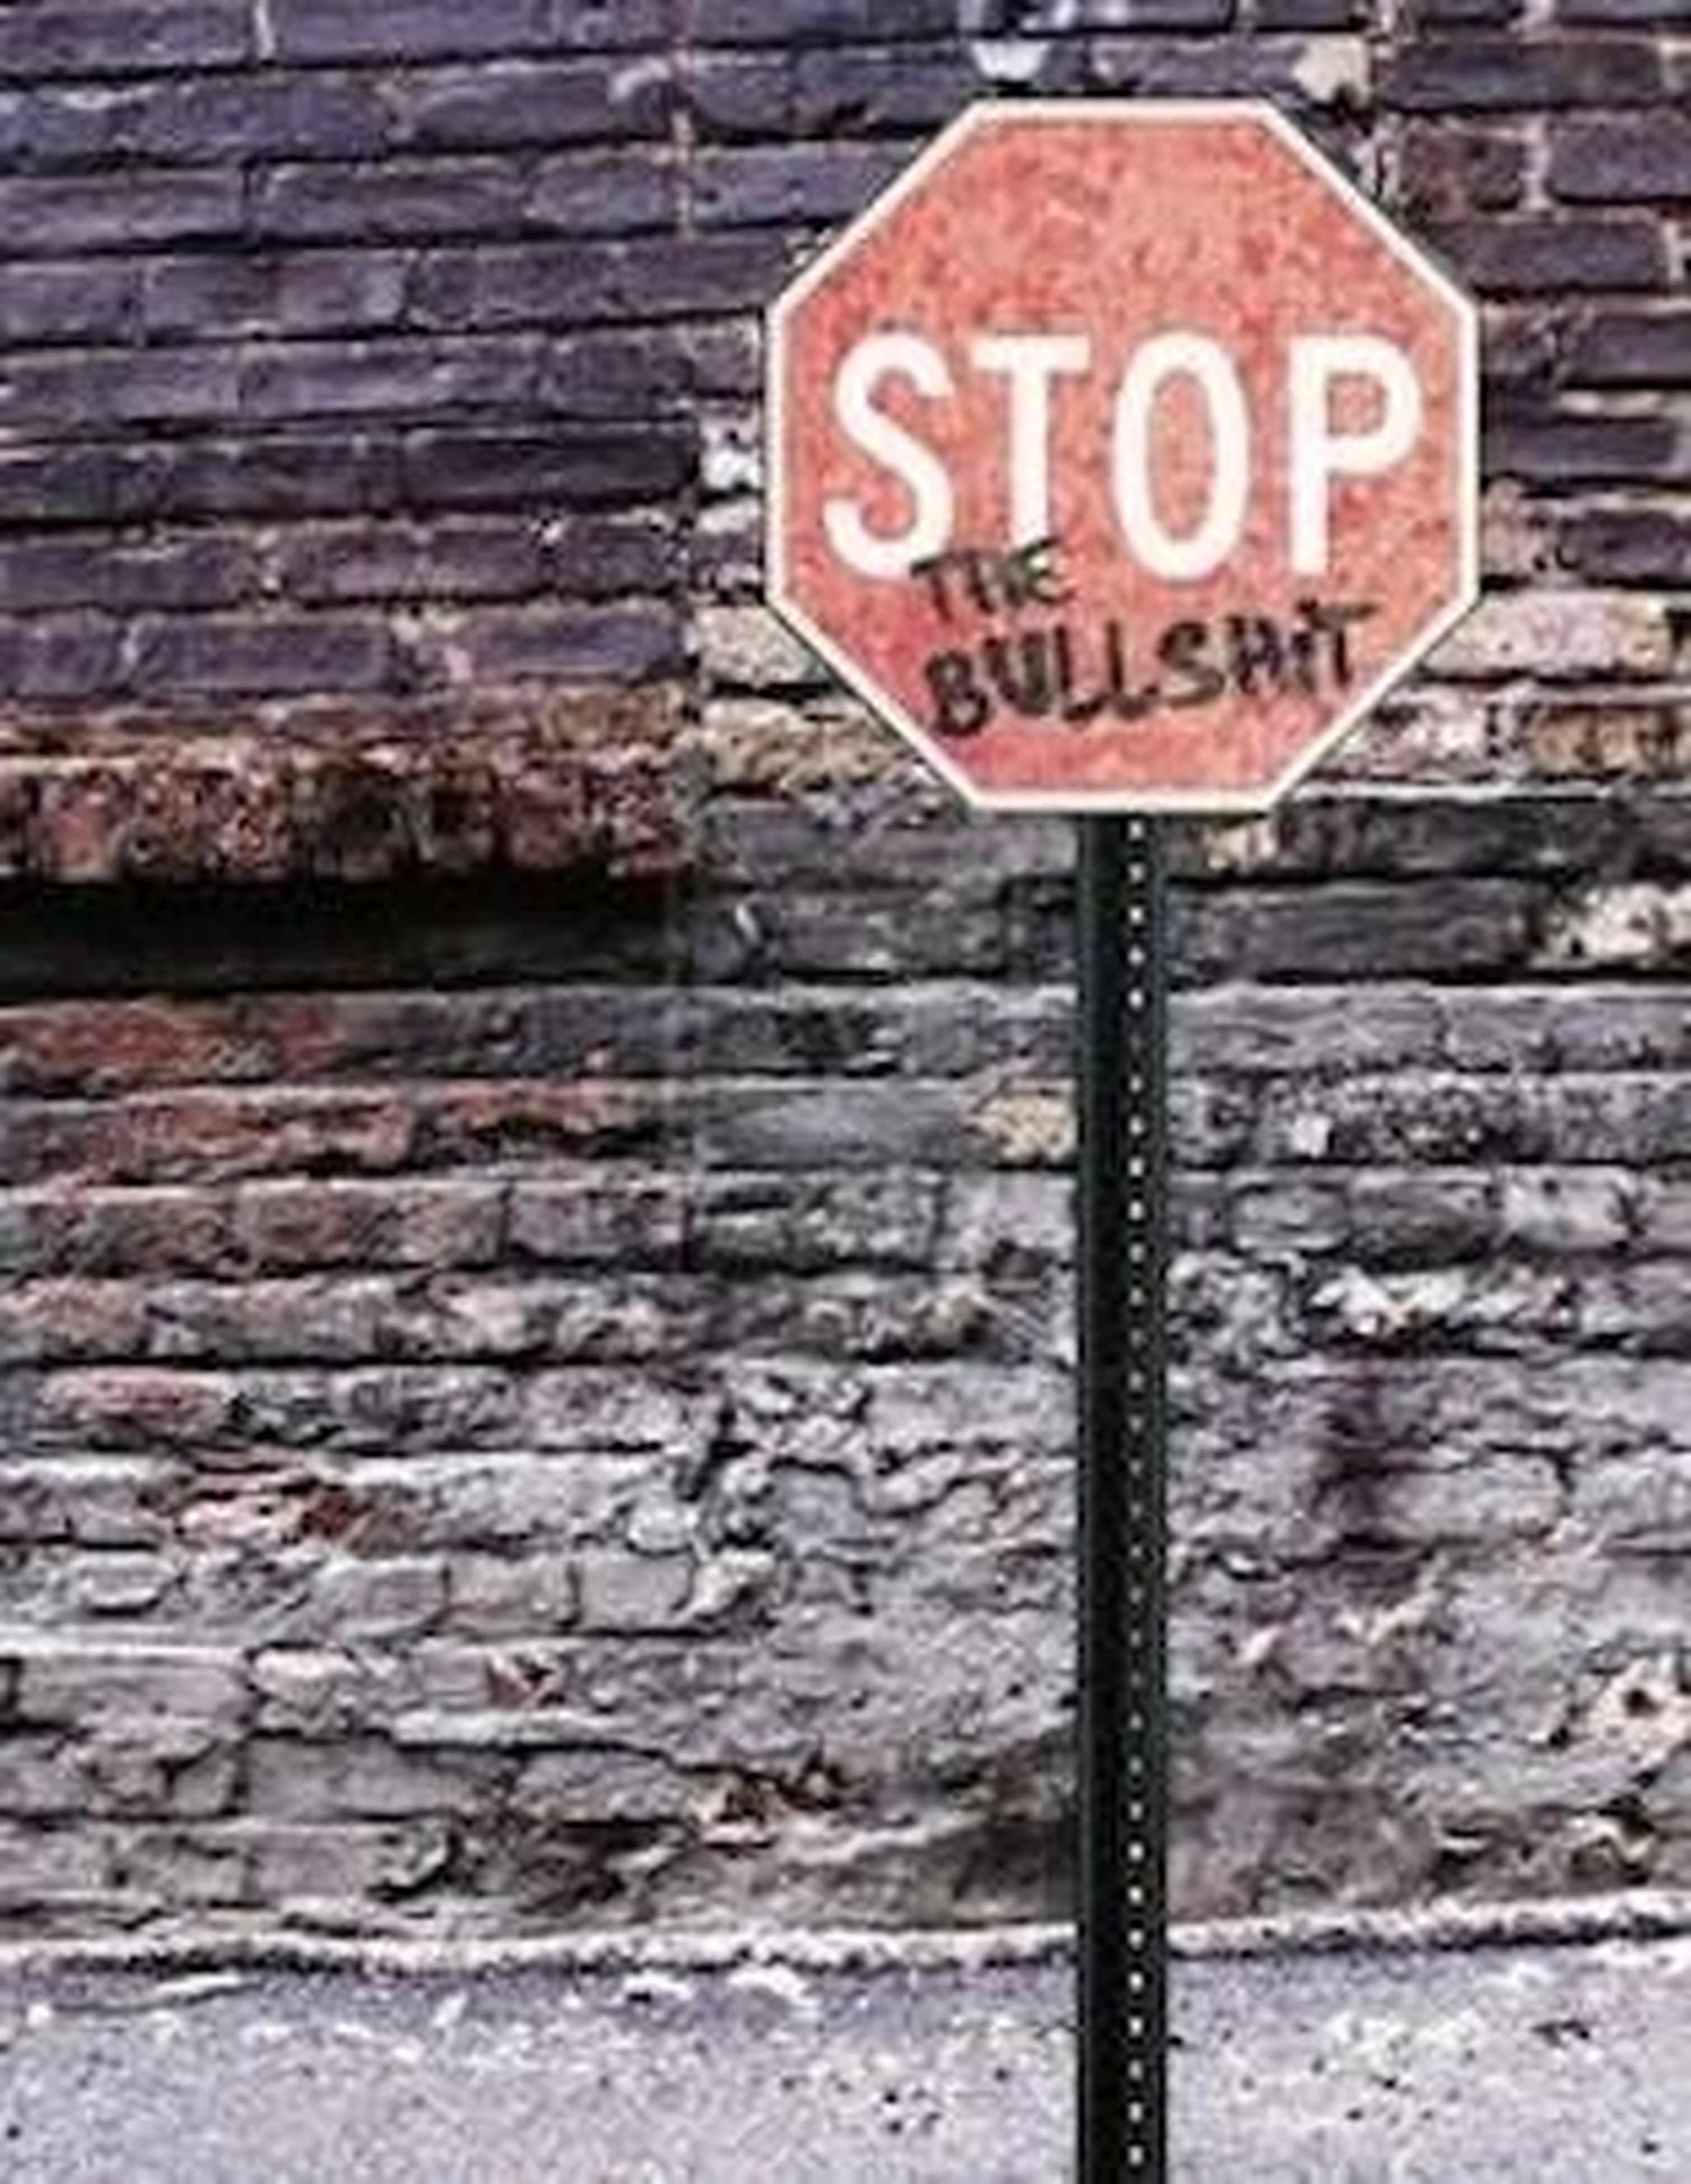 text, communication, brick wall, western script, architecture, wall - building feature, built structure, building exterior, information sign, red, guidance, road sign, wall, sign, information, brick, capital letter, non-western script, stone wall, day